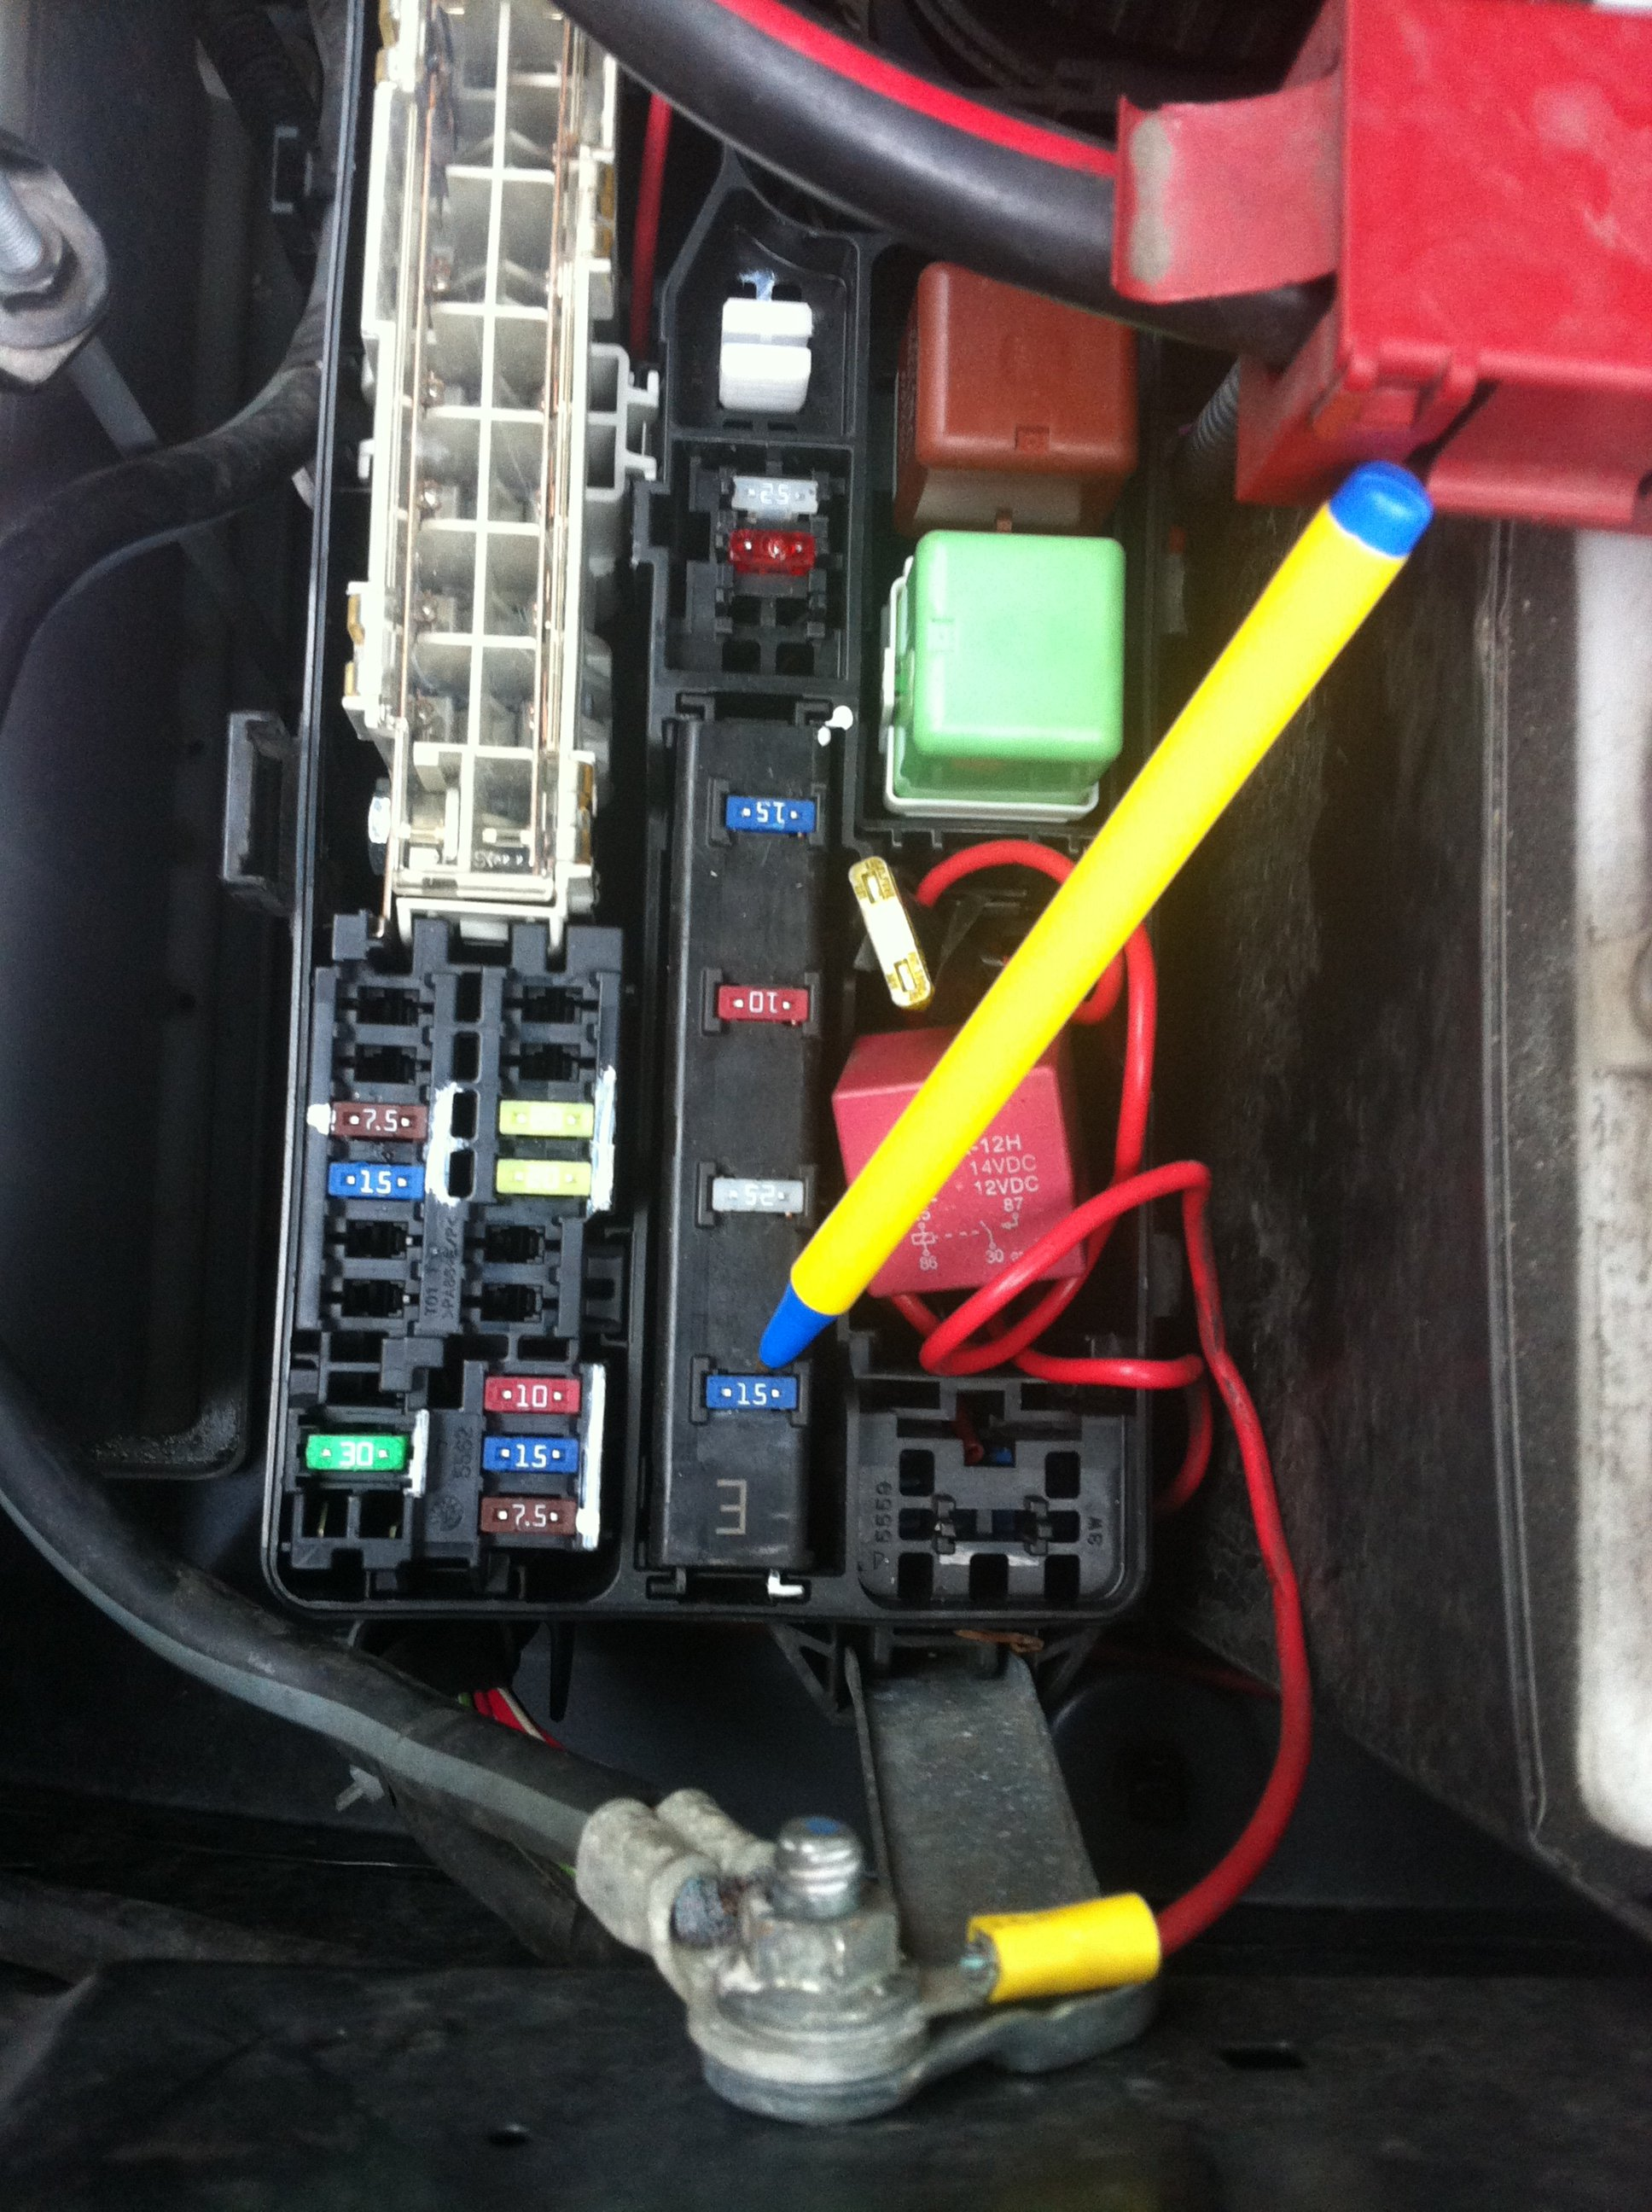 Toyota Vigo Fuse Box Wiring Library Renault Trafic Glow Plug Diagram I Have A 2010 Hilux Invincible With 2 Battery System Lost 2015 Master Auto